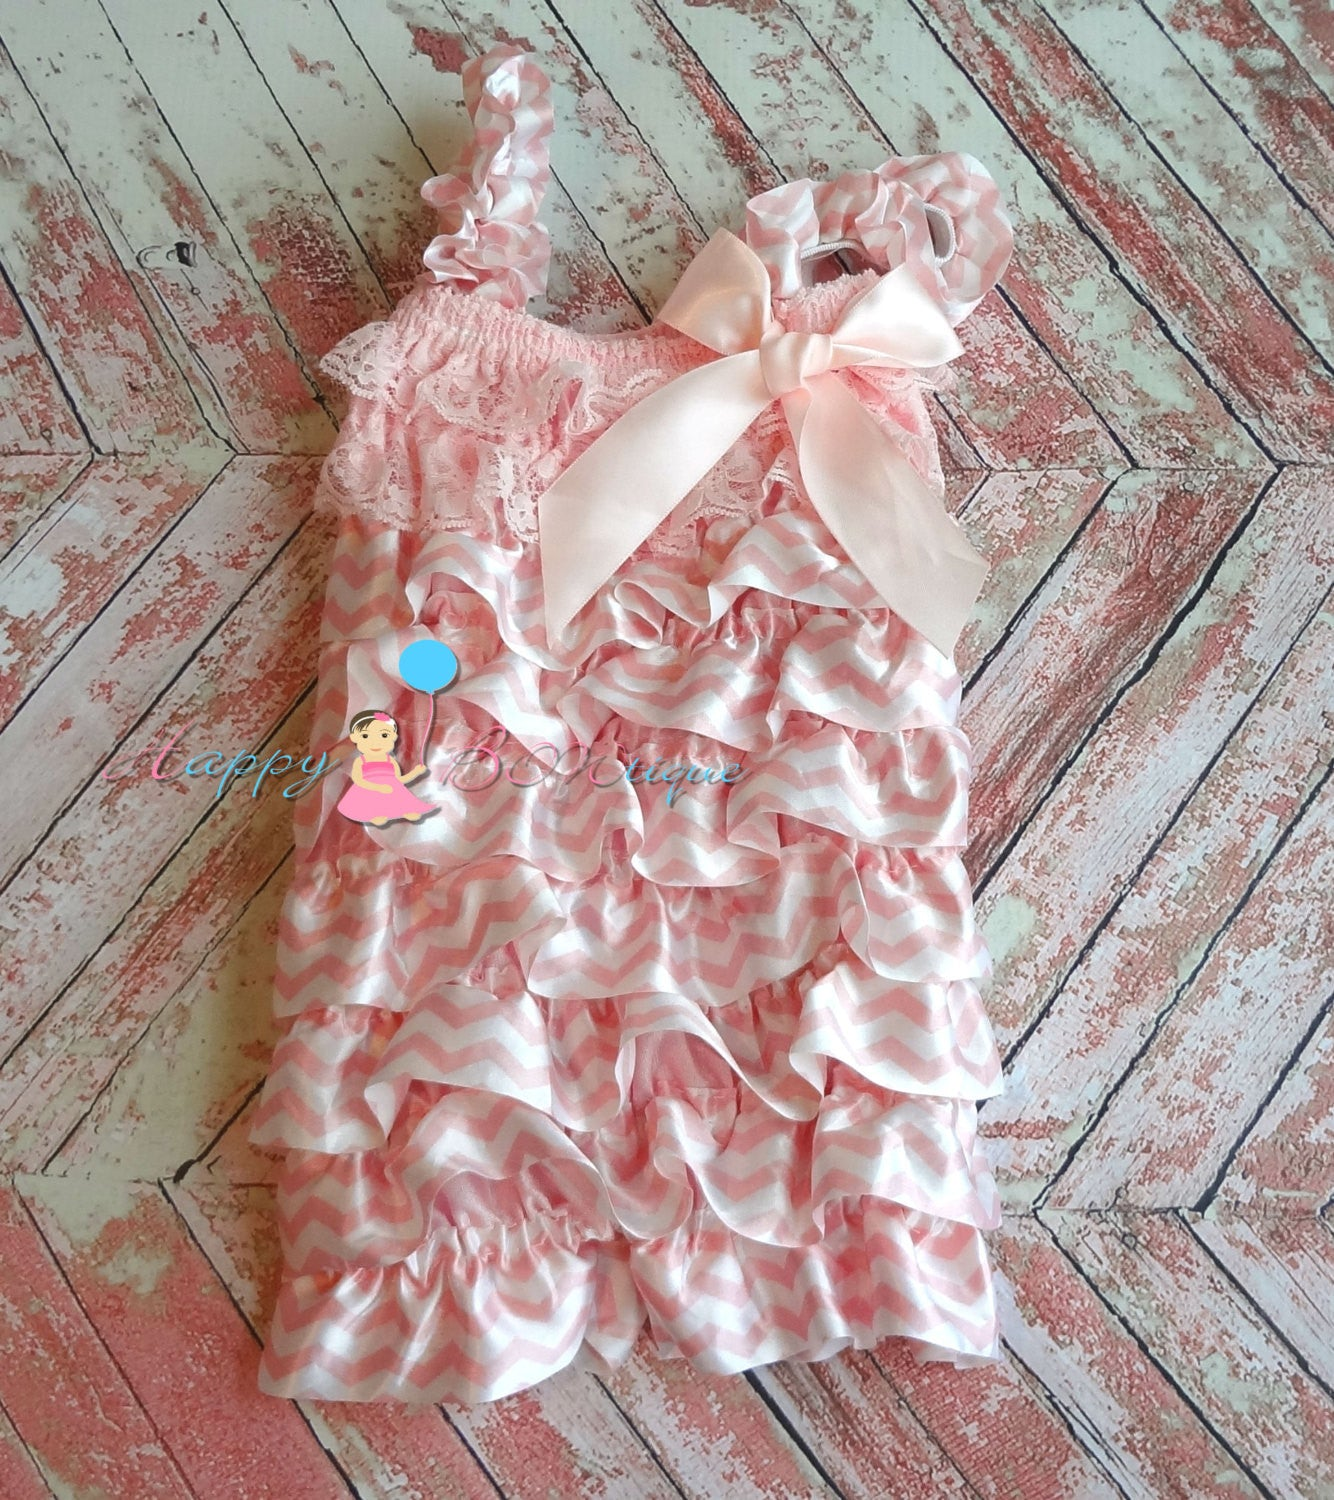 Sweet Pink Chevron Romper - Happy BOWtique - children's clothing, Baby Girl clothing